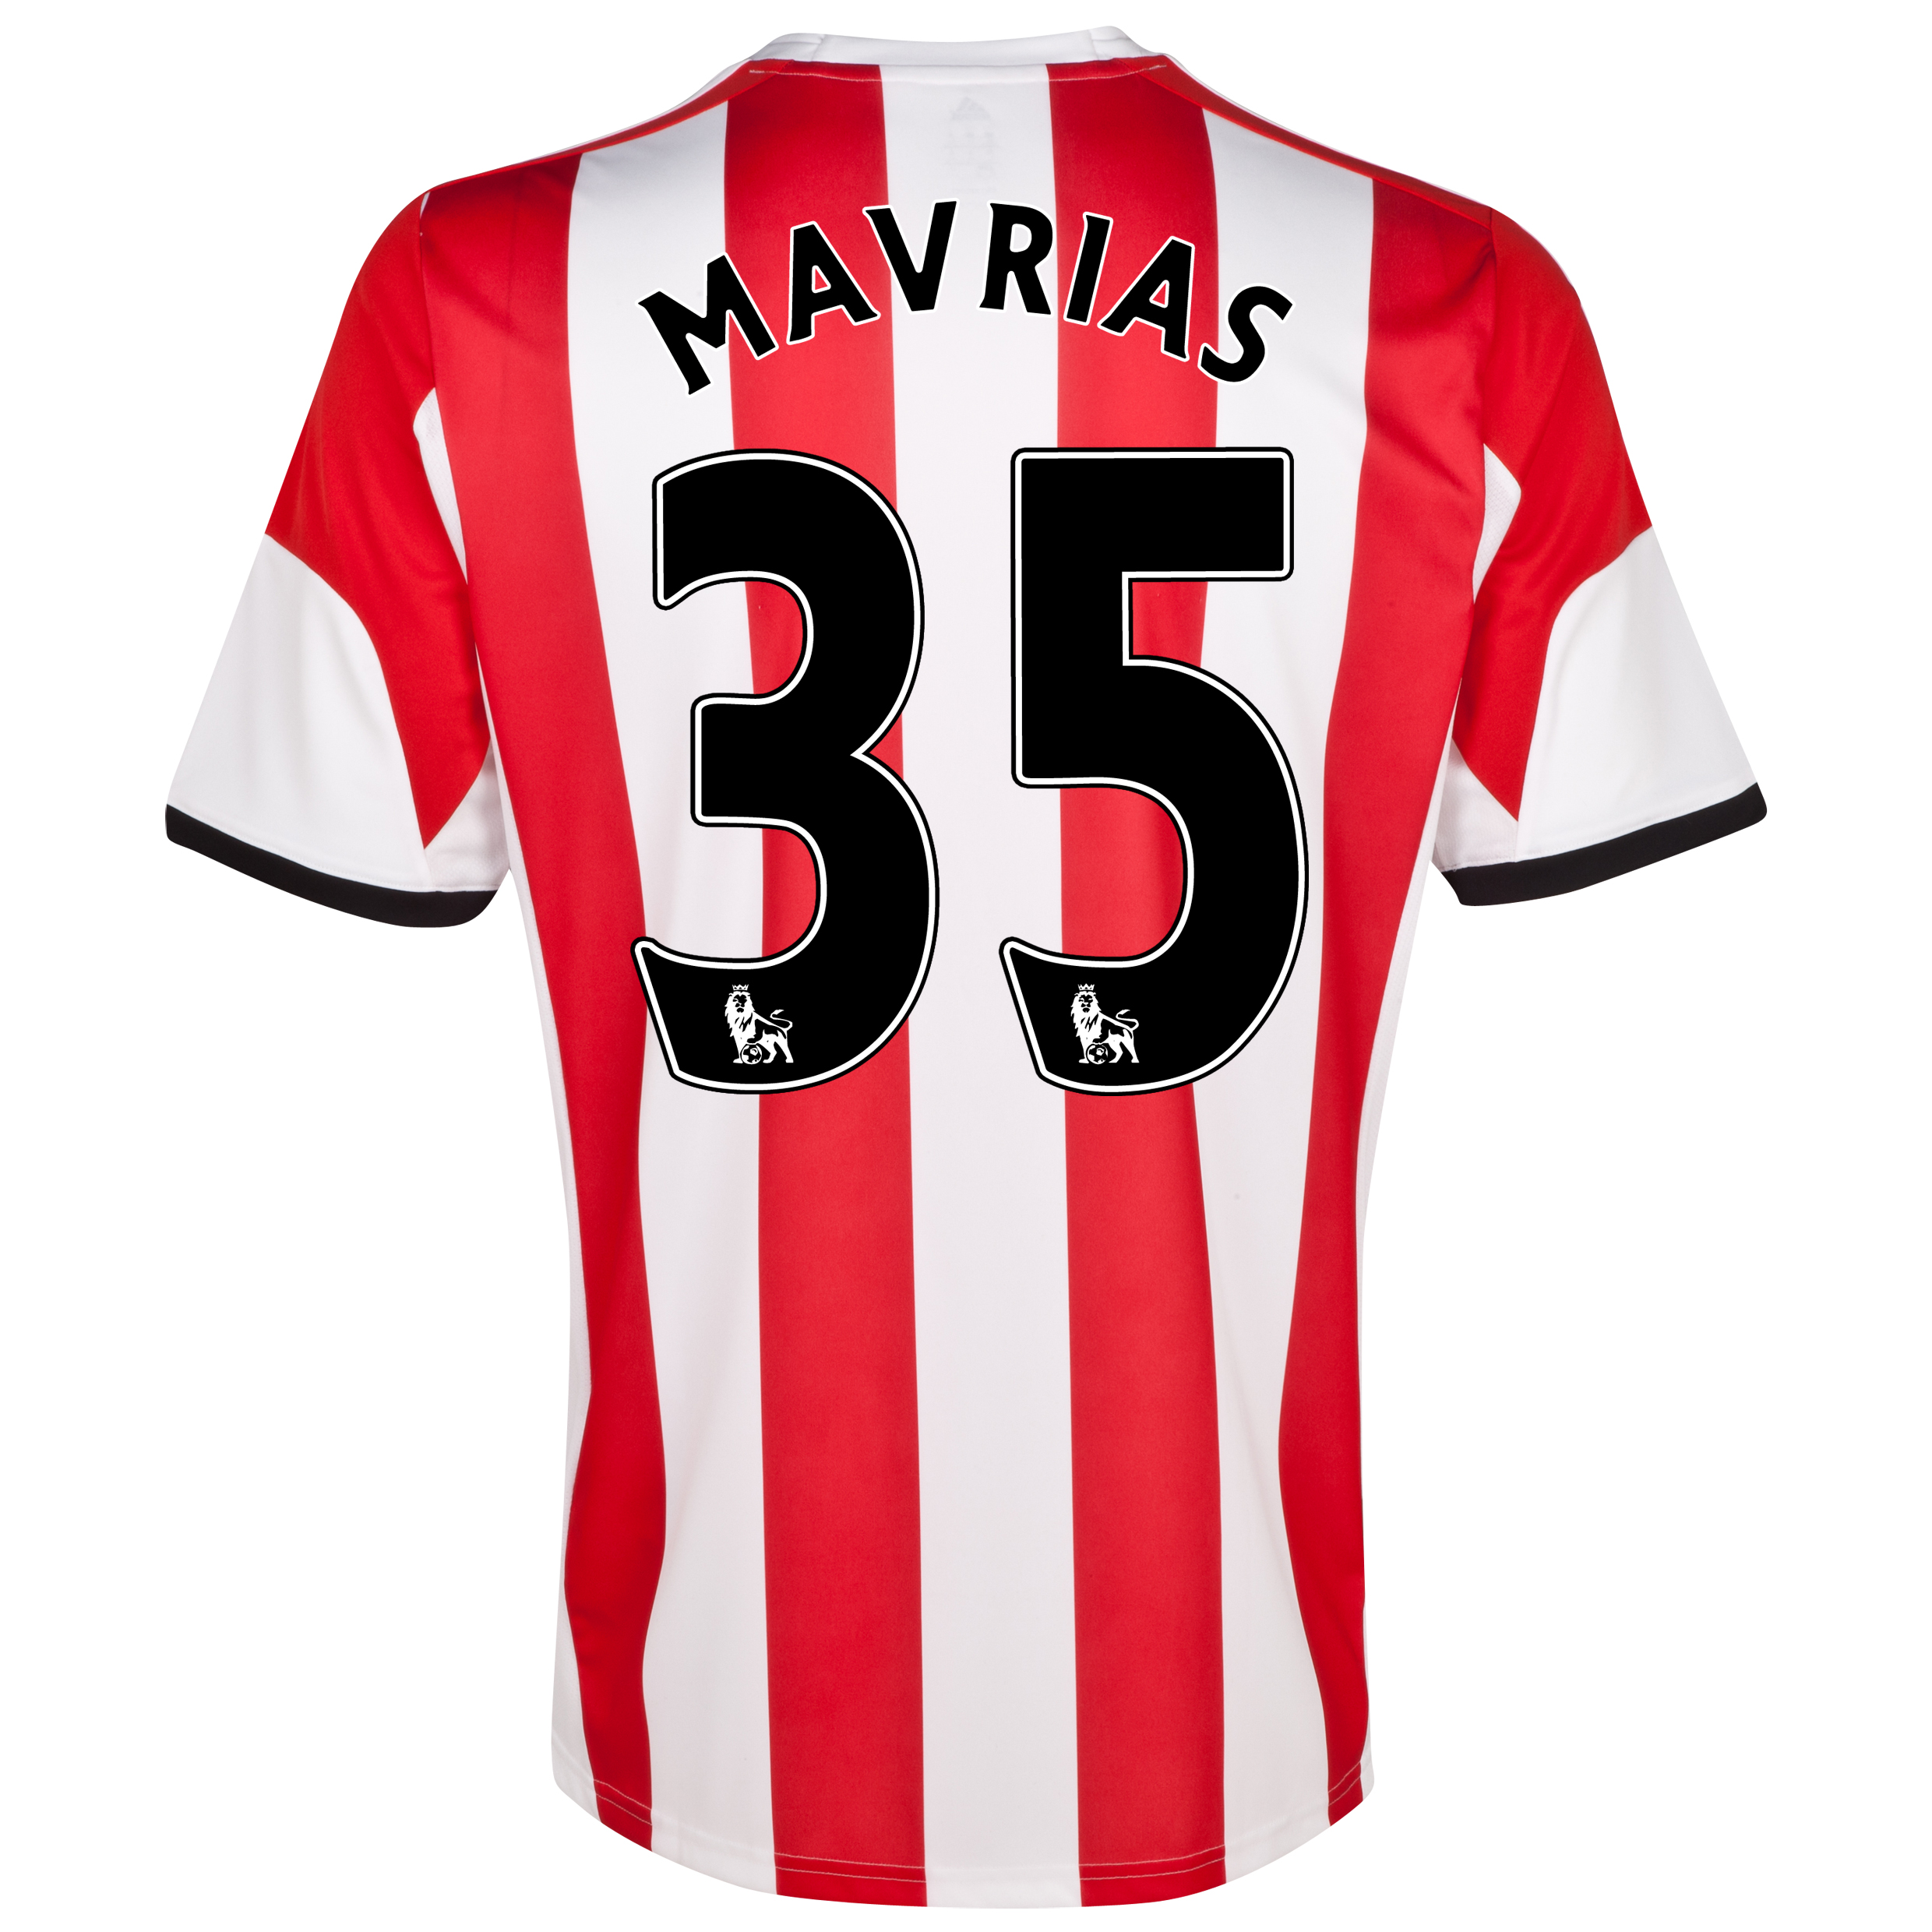 Sunderland Home Shirt 2013/14 with Mavrias 35 printing